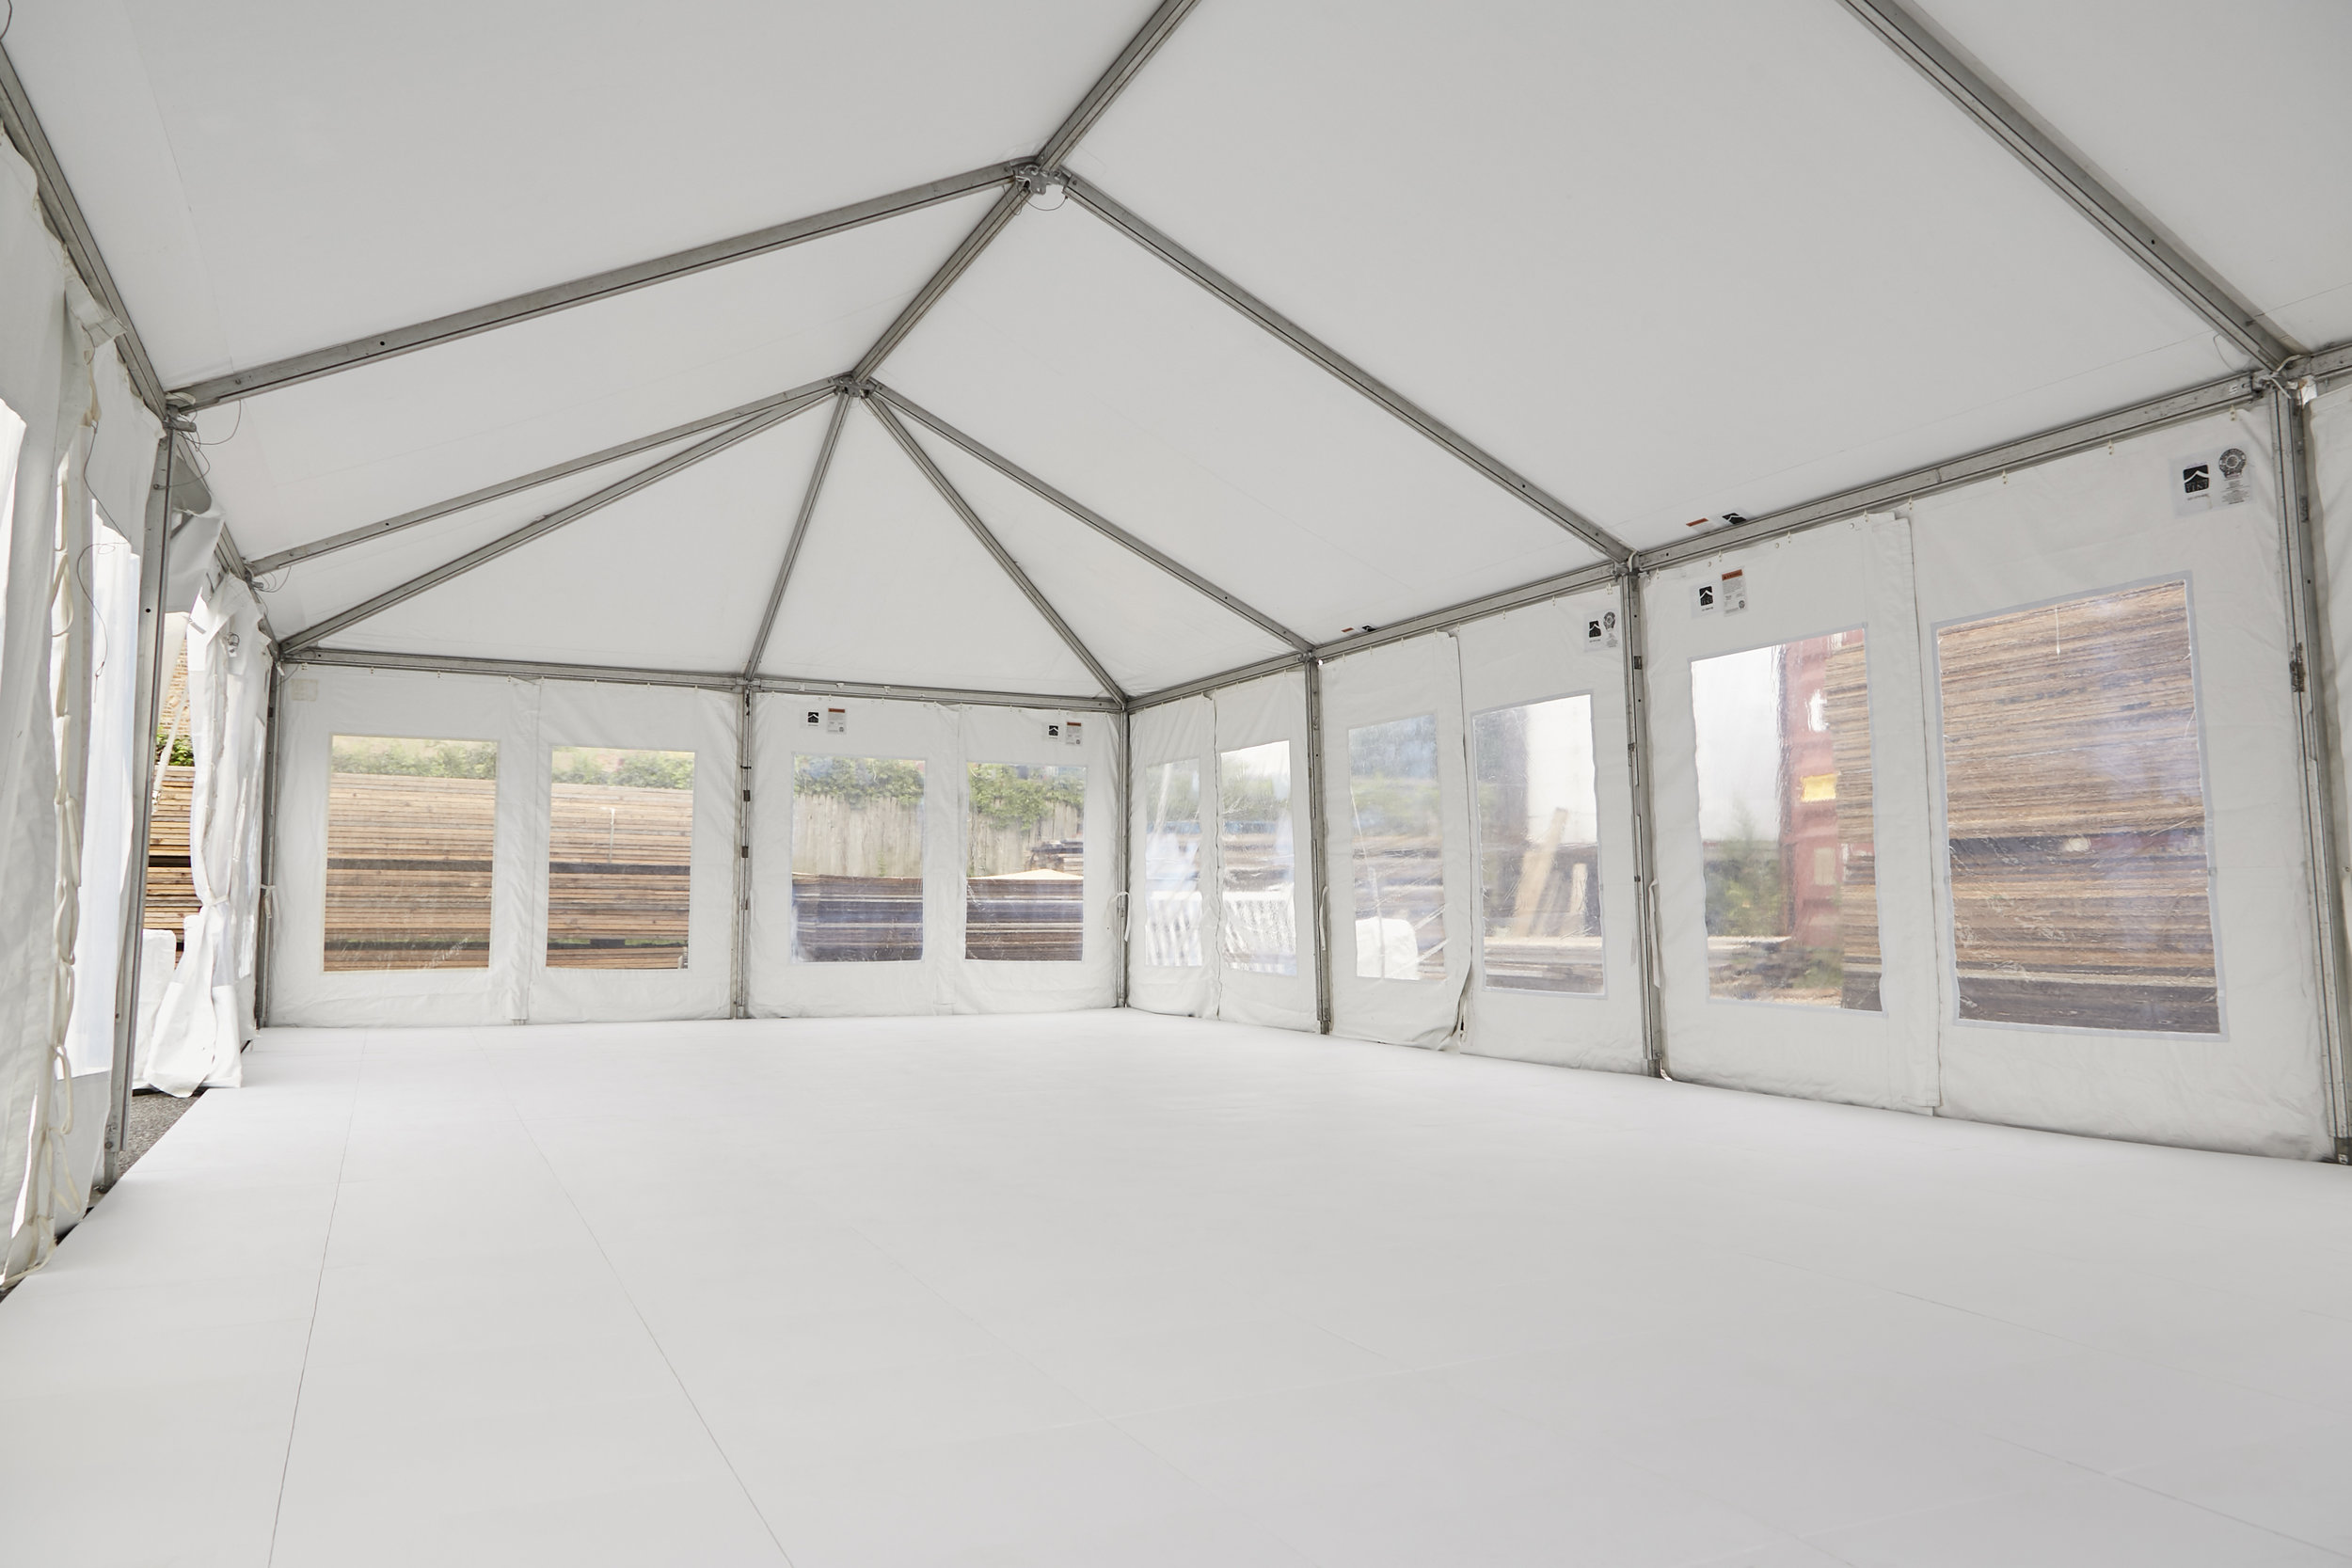 Ideal as tent flooring and provides a more finished look than alternatives, with a streamlined top surface that contains no visible clips or branding.